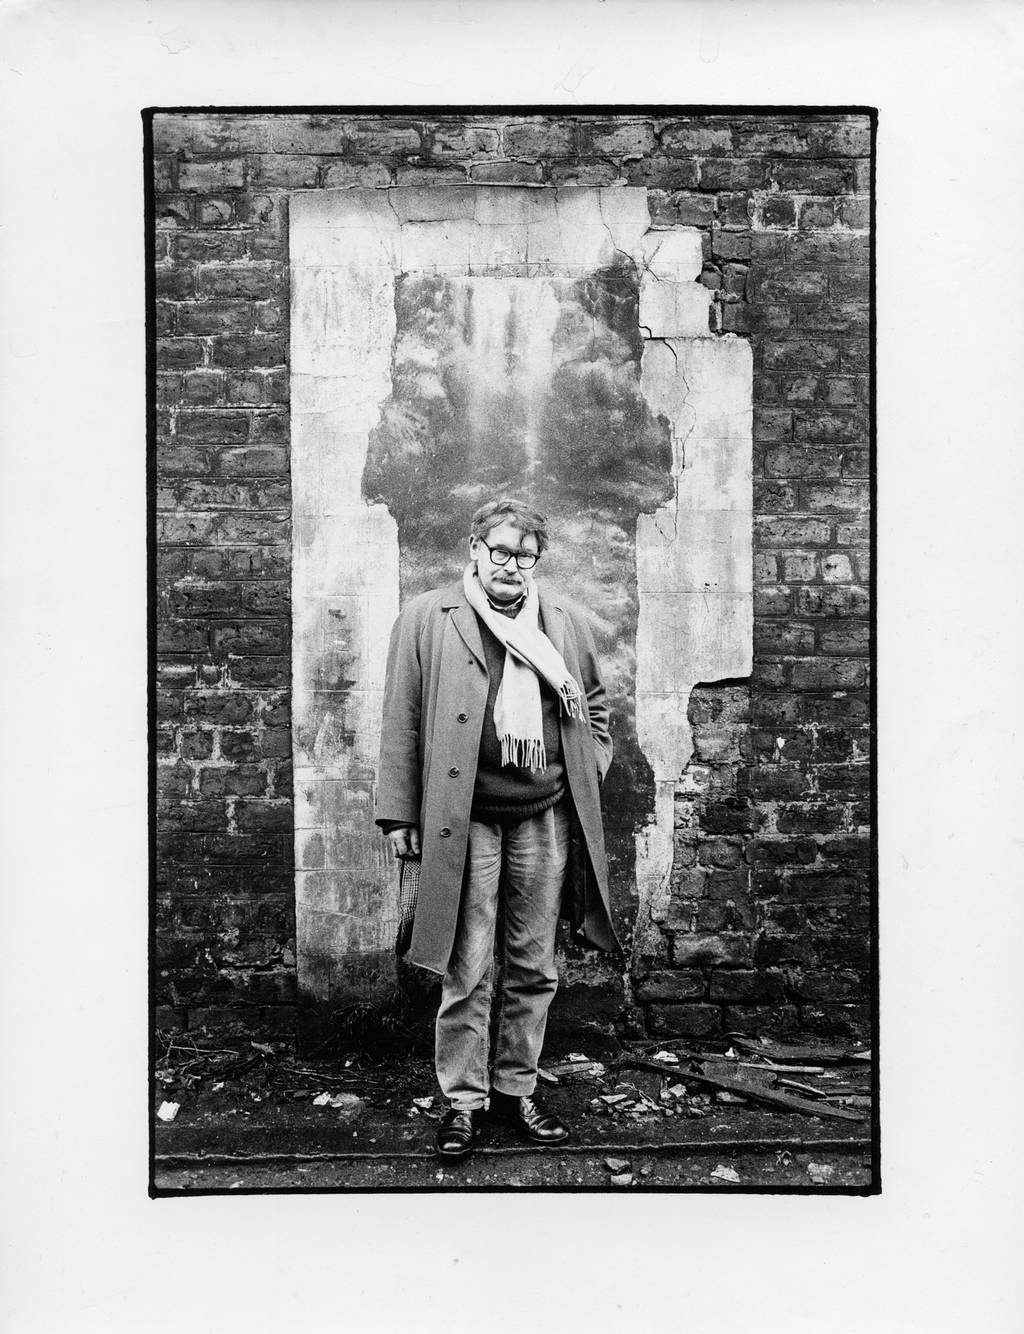 Alan Dimmick: Documenting Life in Glasgow